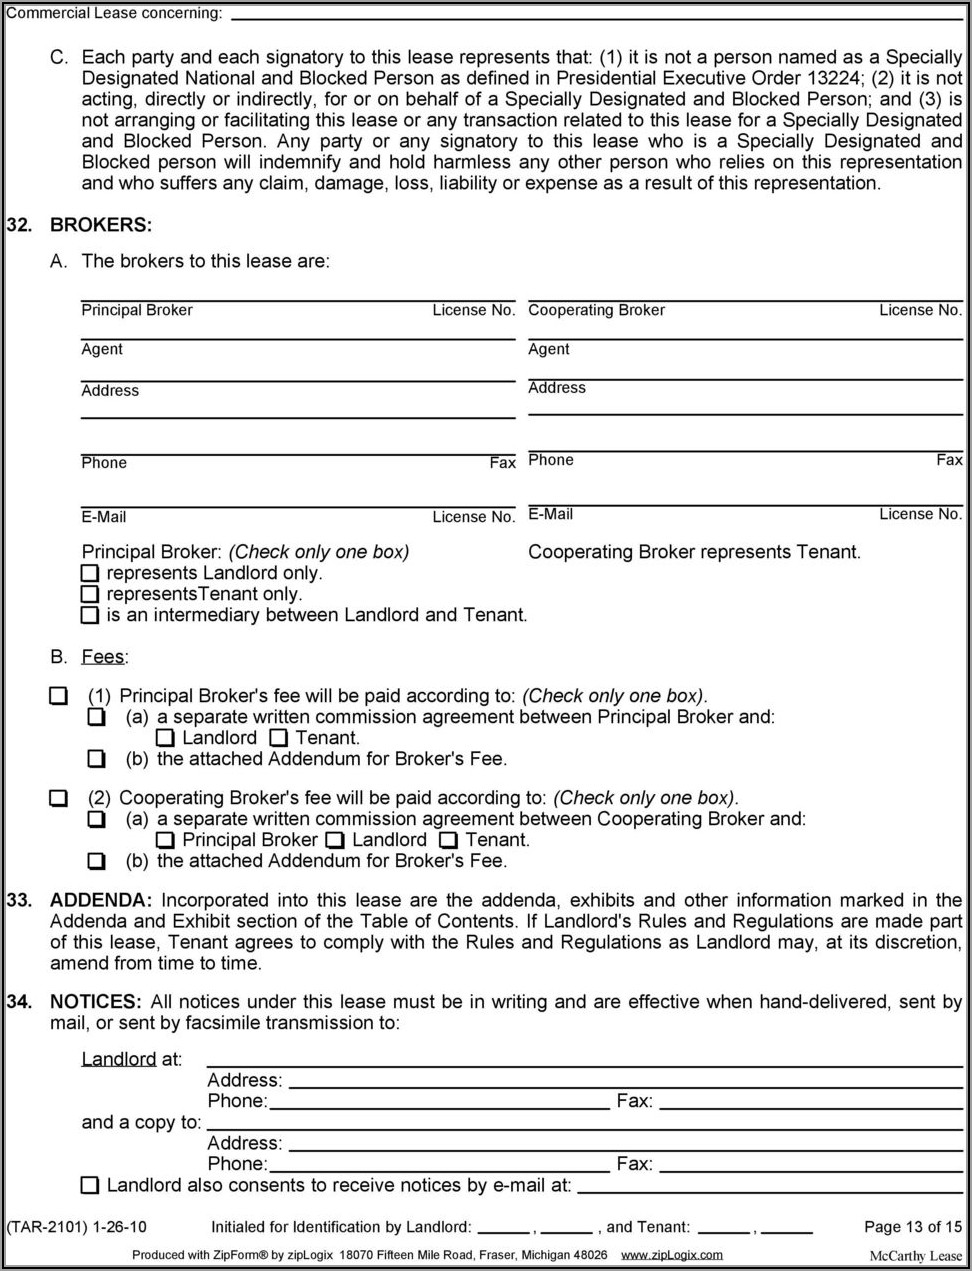 Tar 2101 Commercial Lease Form